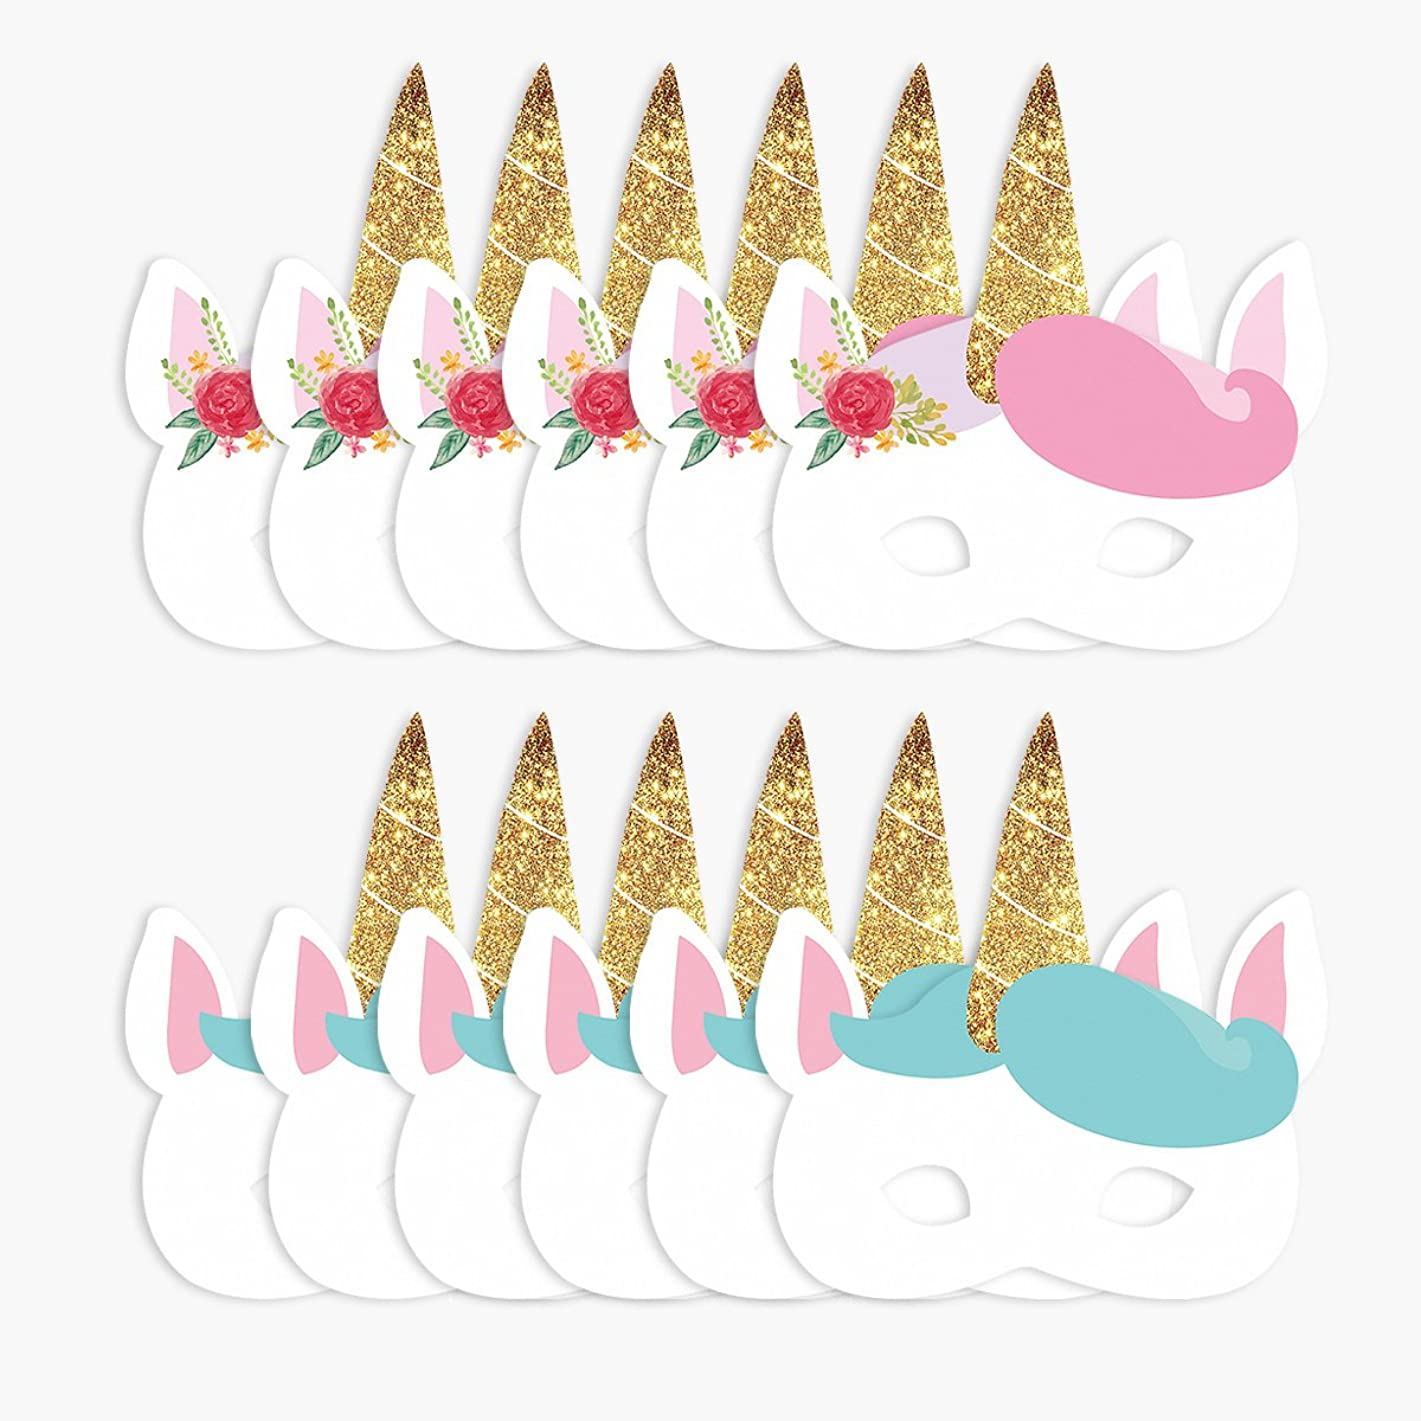 NICROLANDEE 12 Pcs/Set Unicorn Party Masks Glitter Horn for Unicorn Kids Birthday Party Photo Props Dress-Up Party Accessory